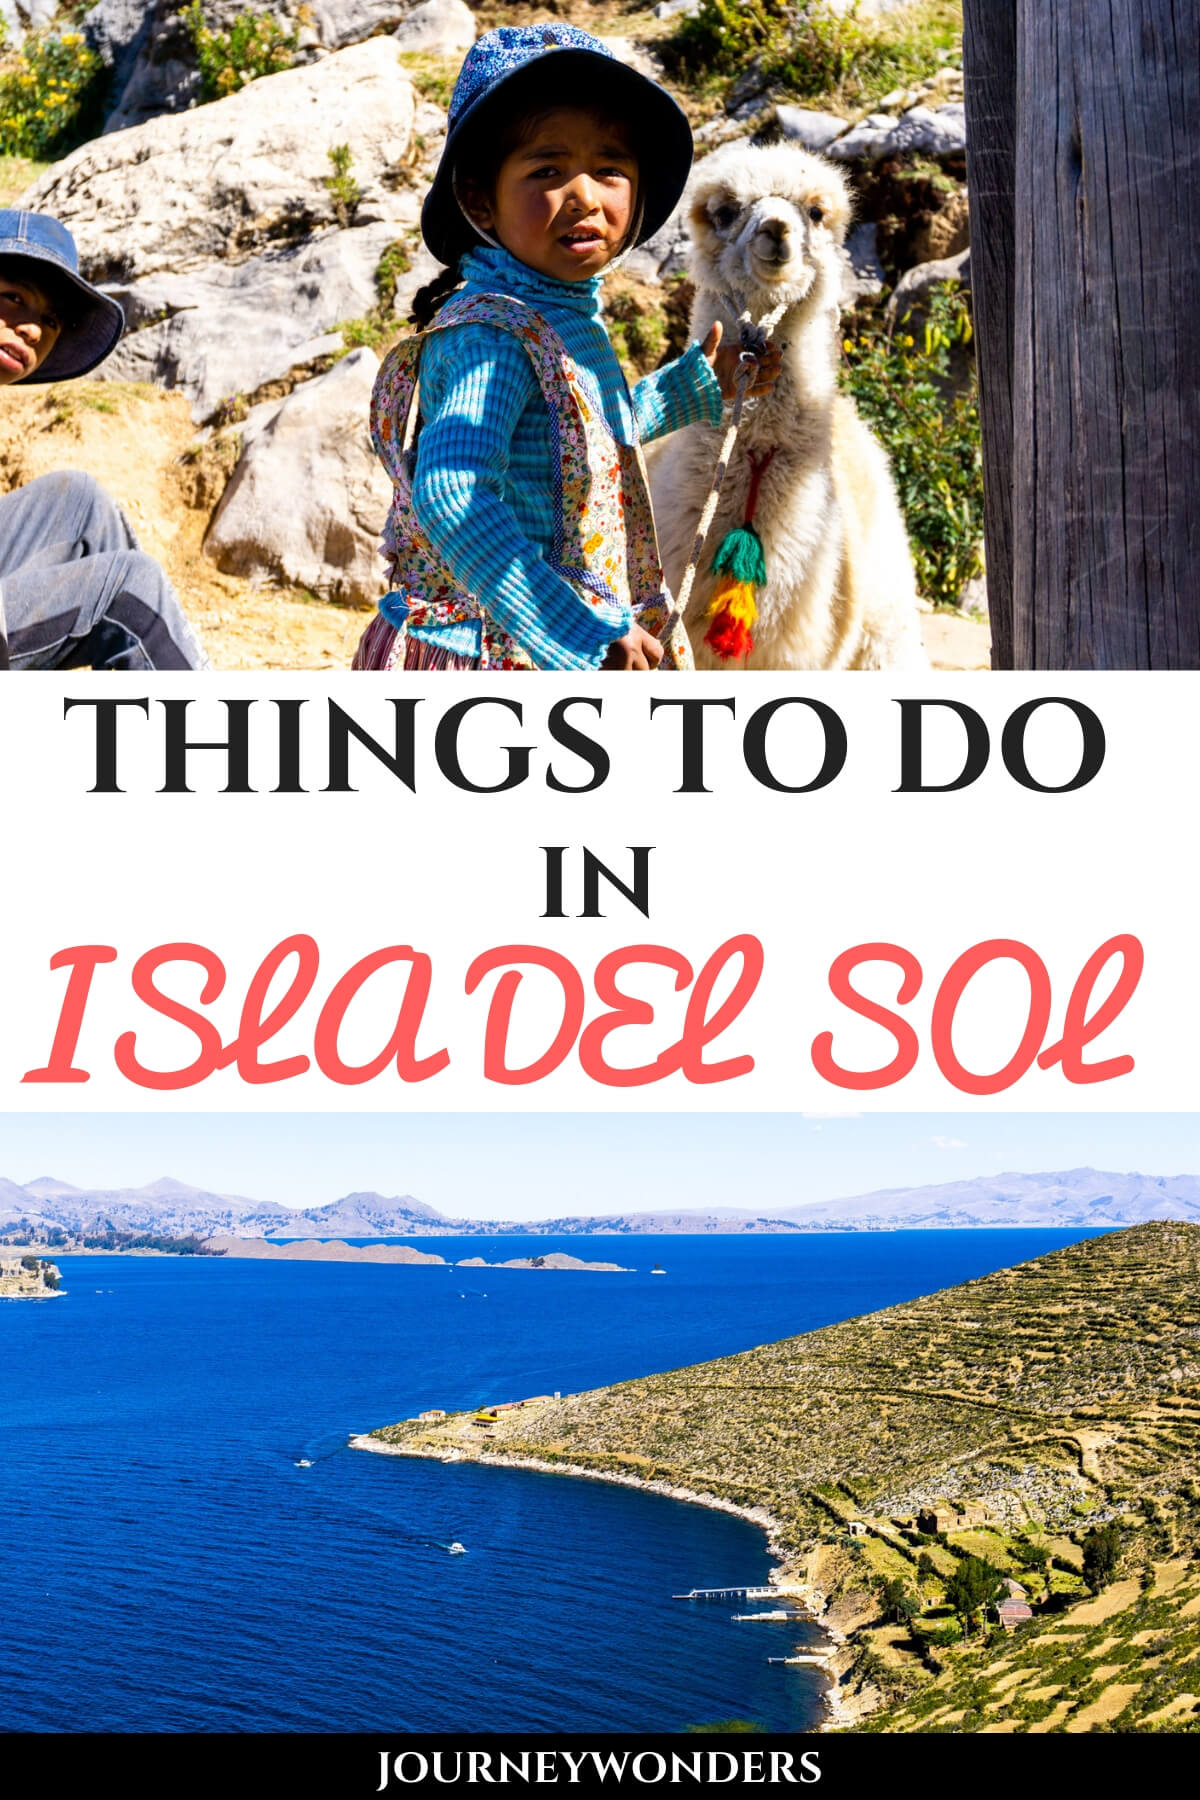 Things to do in Isla del Sol, #Bolivia #Copacabana #SouthAmerica #SouthAmericaTravel